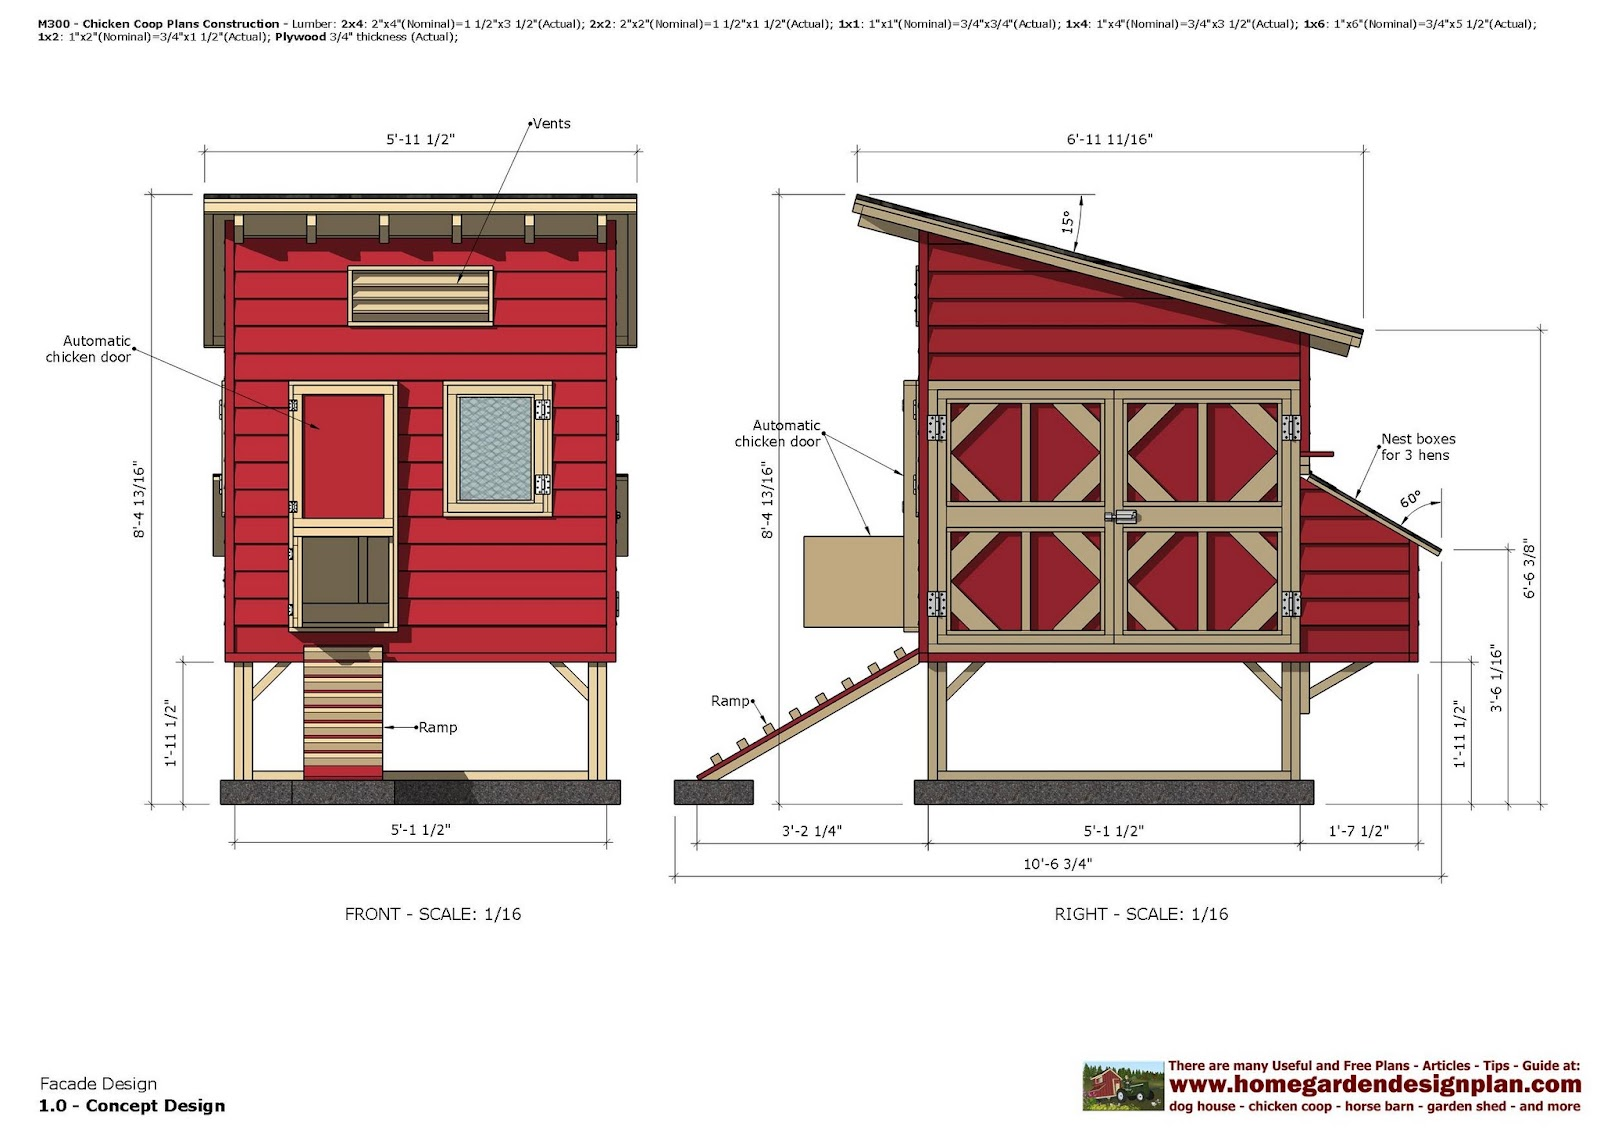 Home garden plans m300 chicken coop plans construction for Free house plans with material list